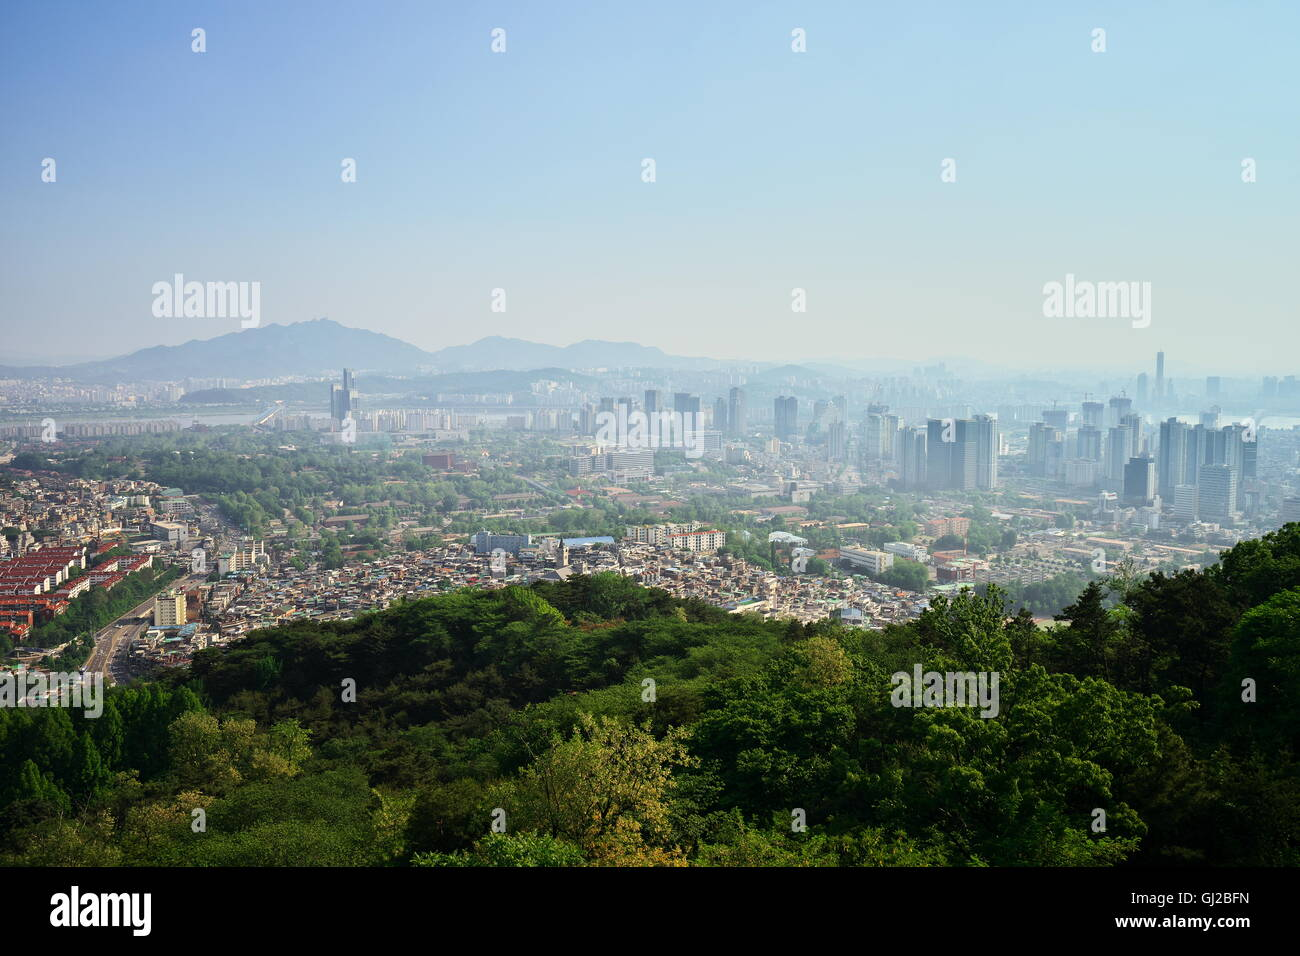 View of Seoul from N Seoul Tower, Namsan Park, Seoul - Stock Image